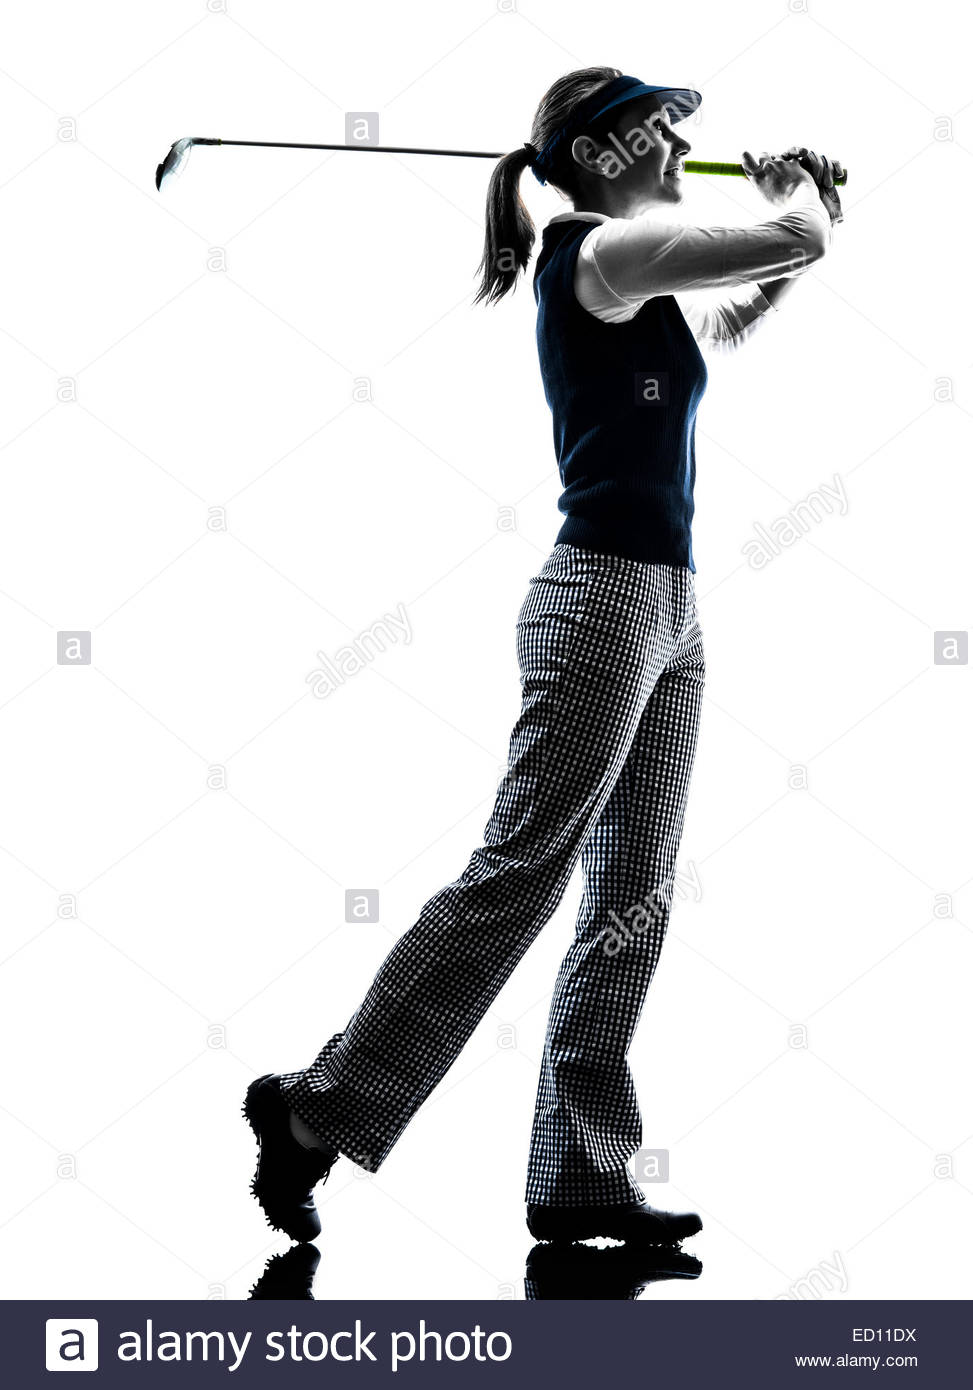 973x1390 Golf Swing Golfing Golfer Silhouette Stock Photos Amp Golf Swing